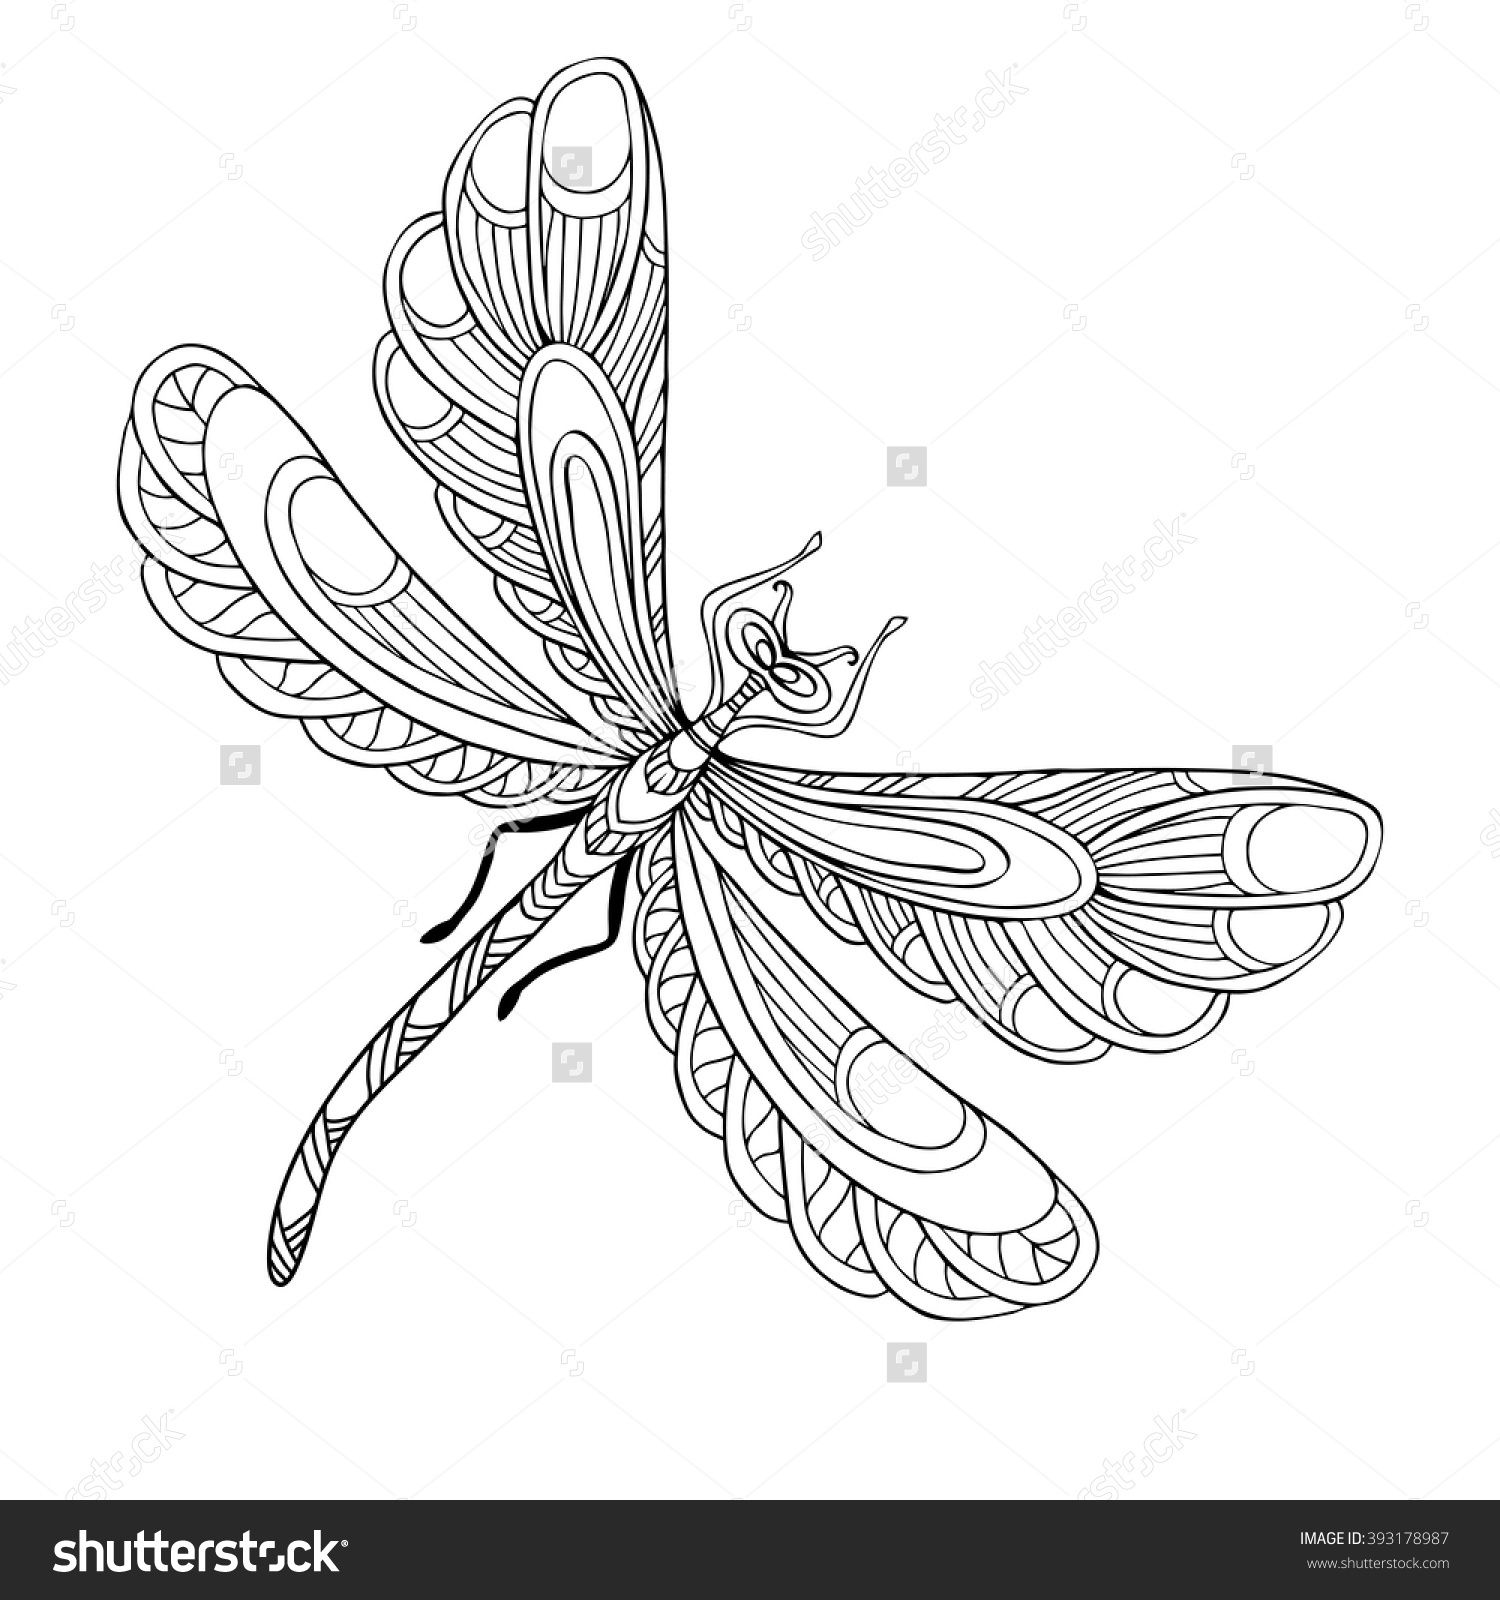 Adult Dragonfly Coloring Pages Lotus Flower Art Insect Coloring